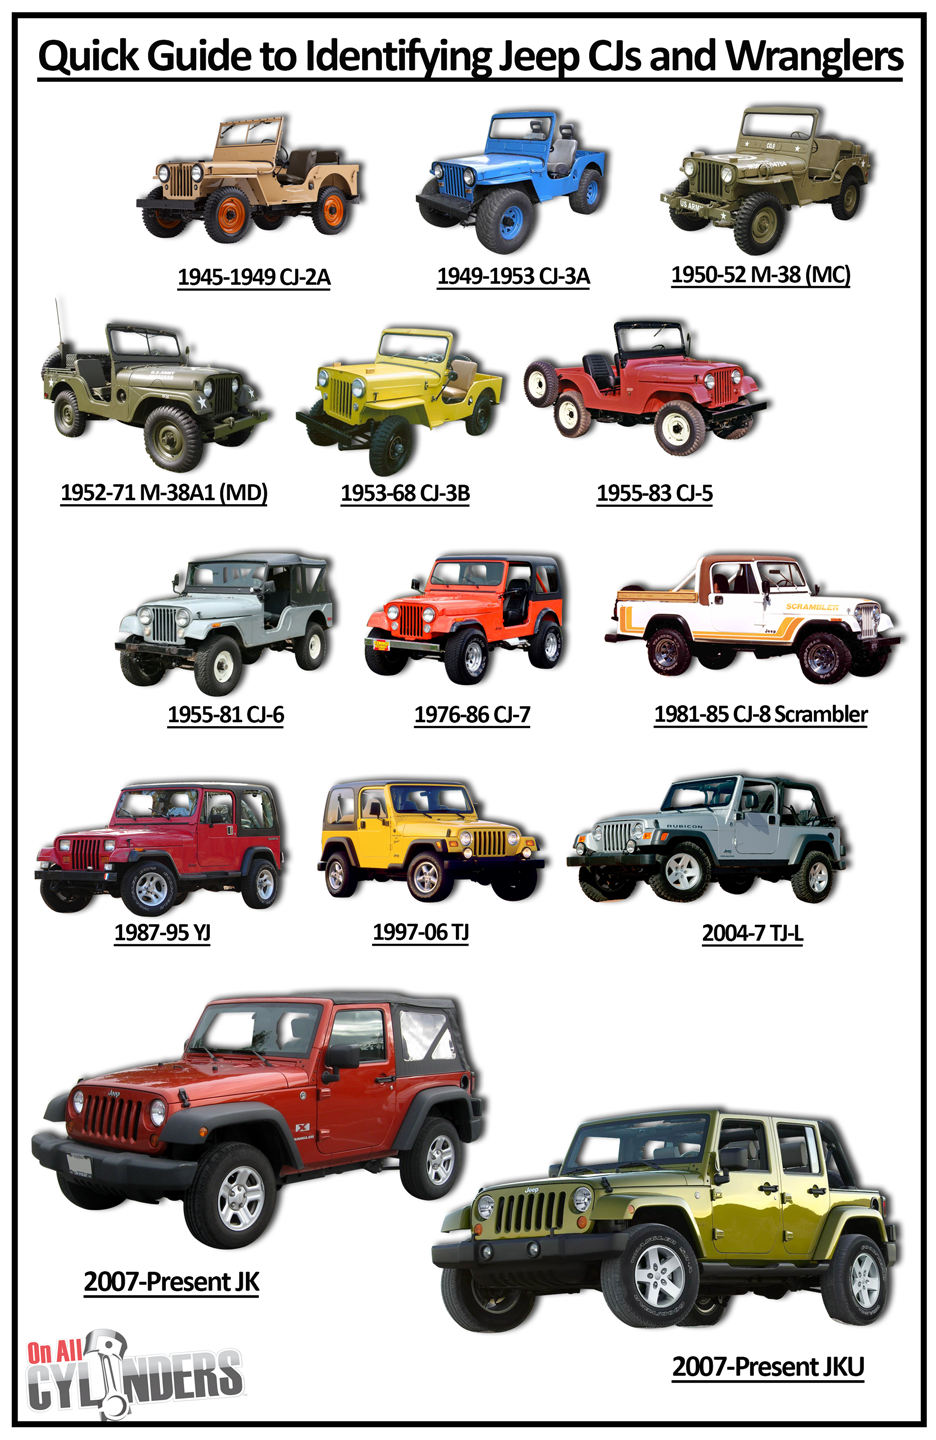 Types Of Jeeps >> Ride Guides: A Quick Guide to Identifying Jeep CJs and 1987-2018 Wranglers - OnAllCylinders